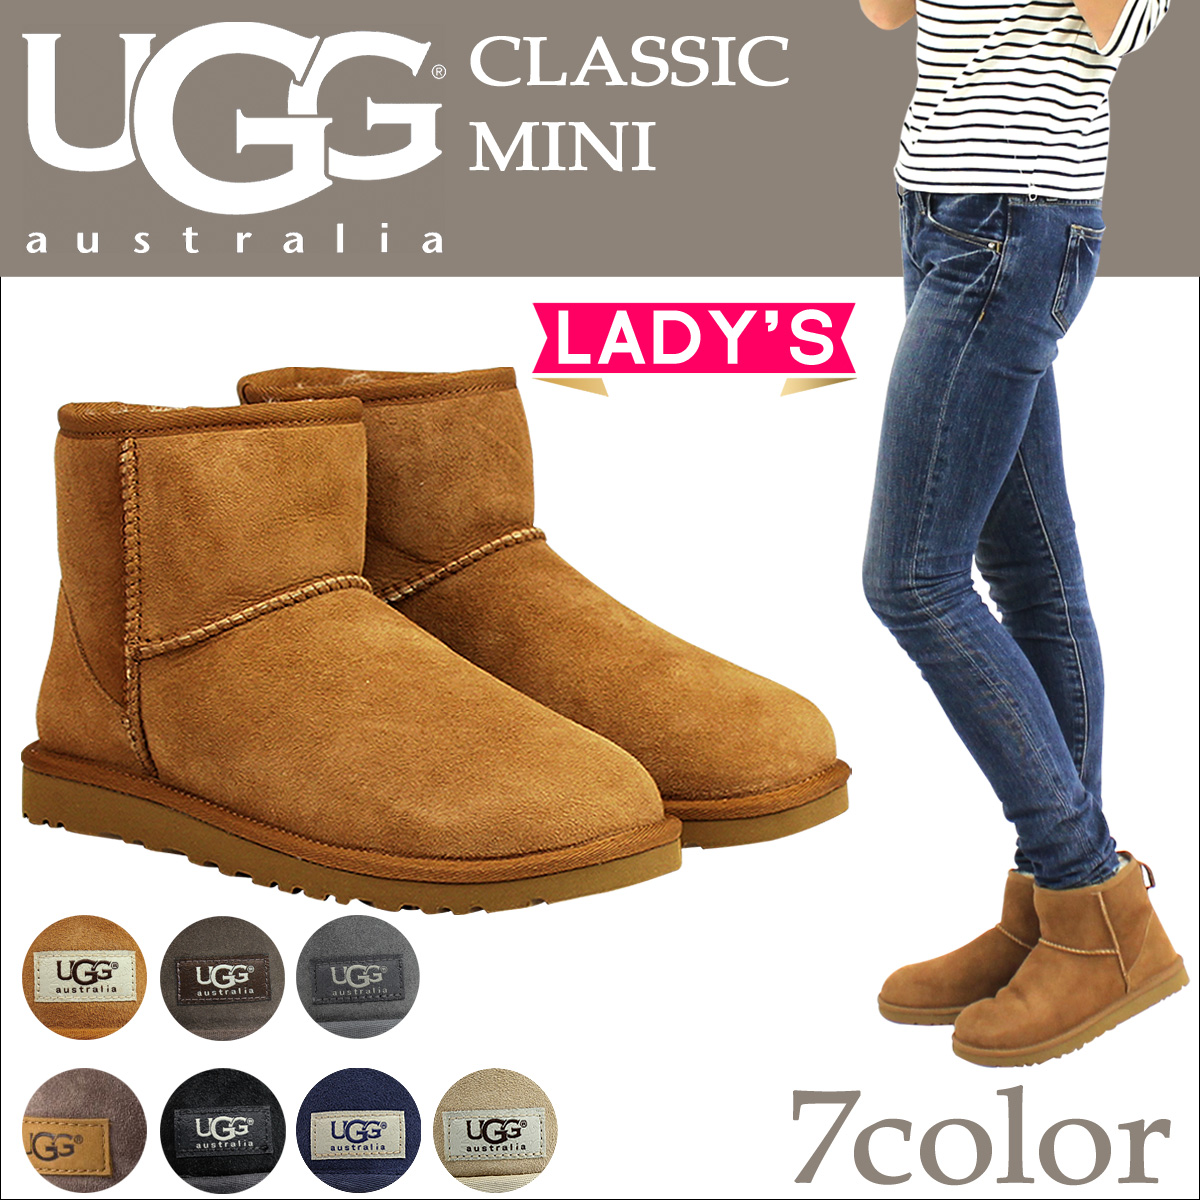 cheaper sale diversified in packaging shop for genuine usa ugg classic mini in women s shoes and boots 4b6c2 ea2ab